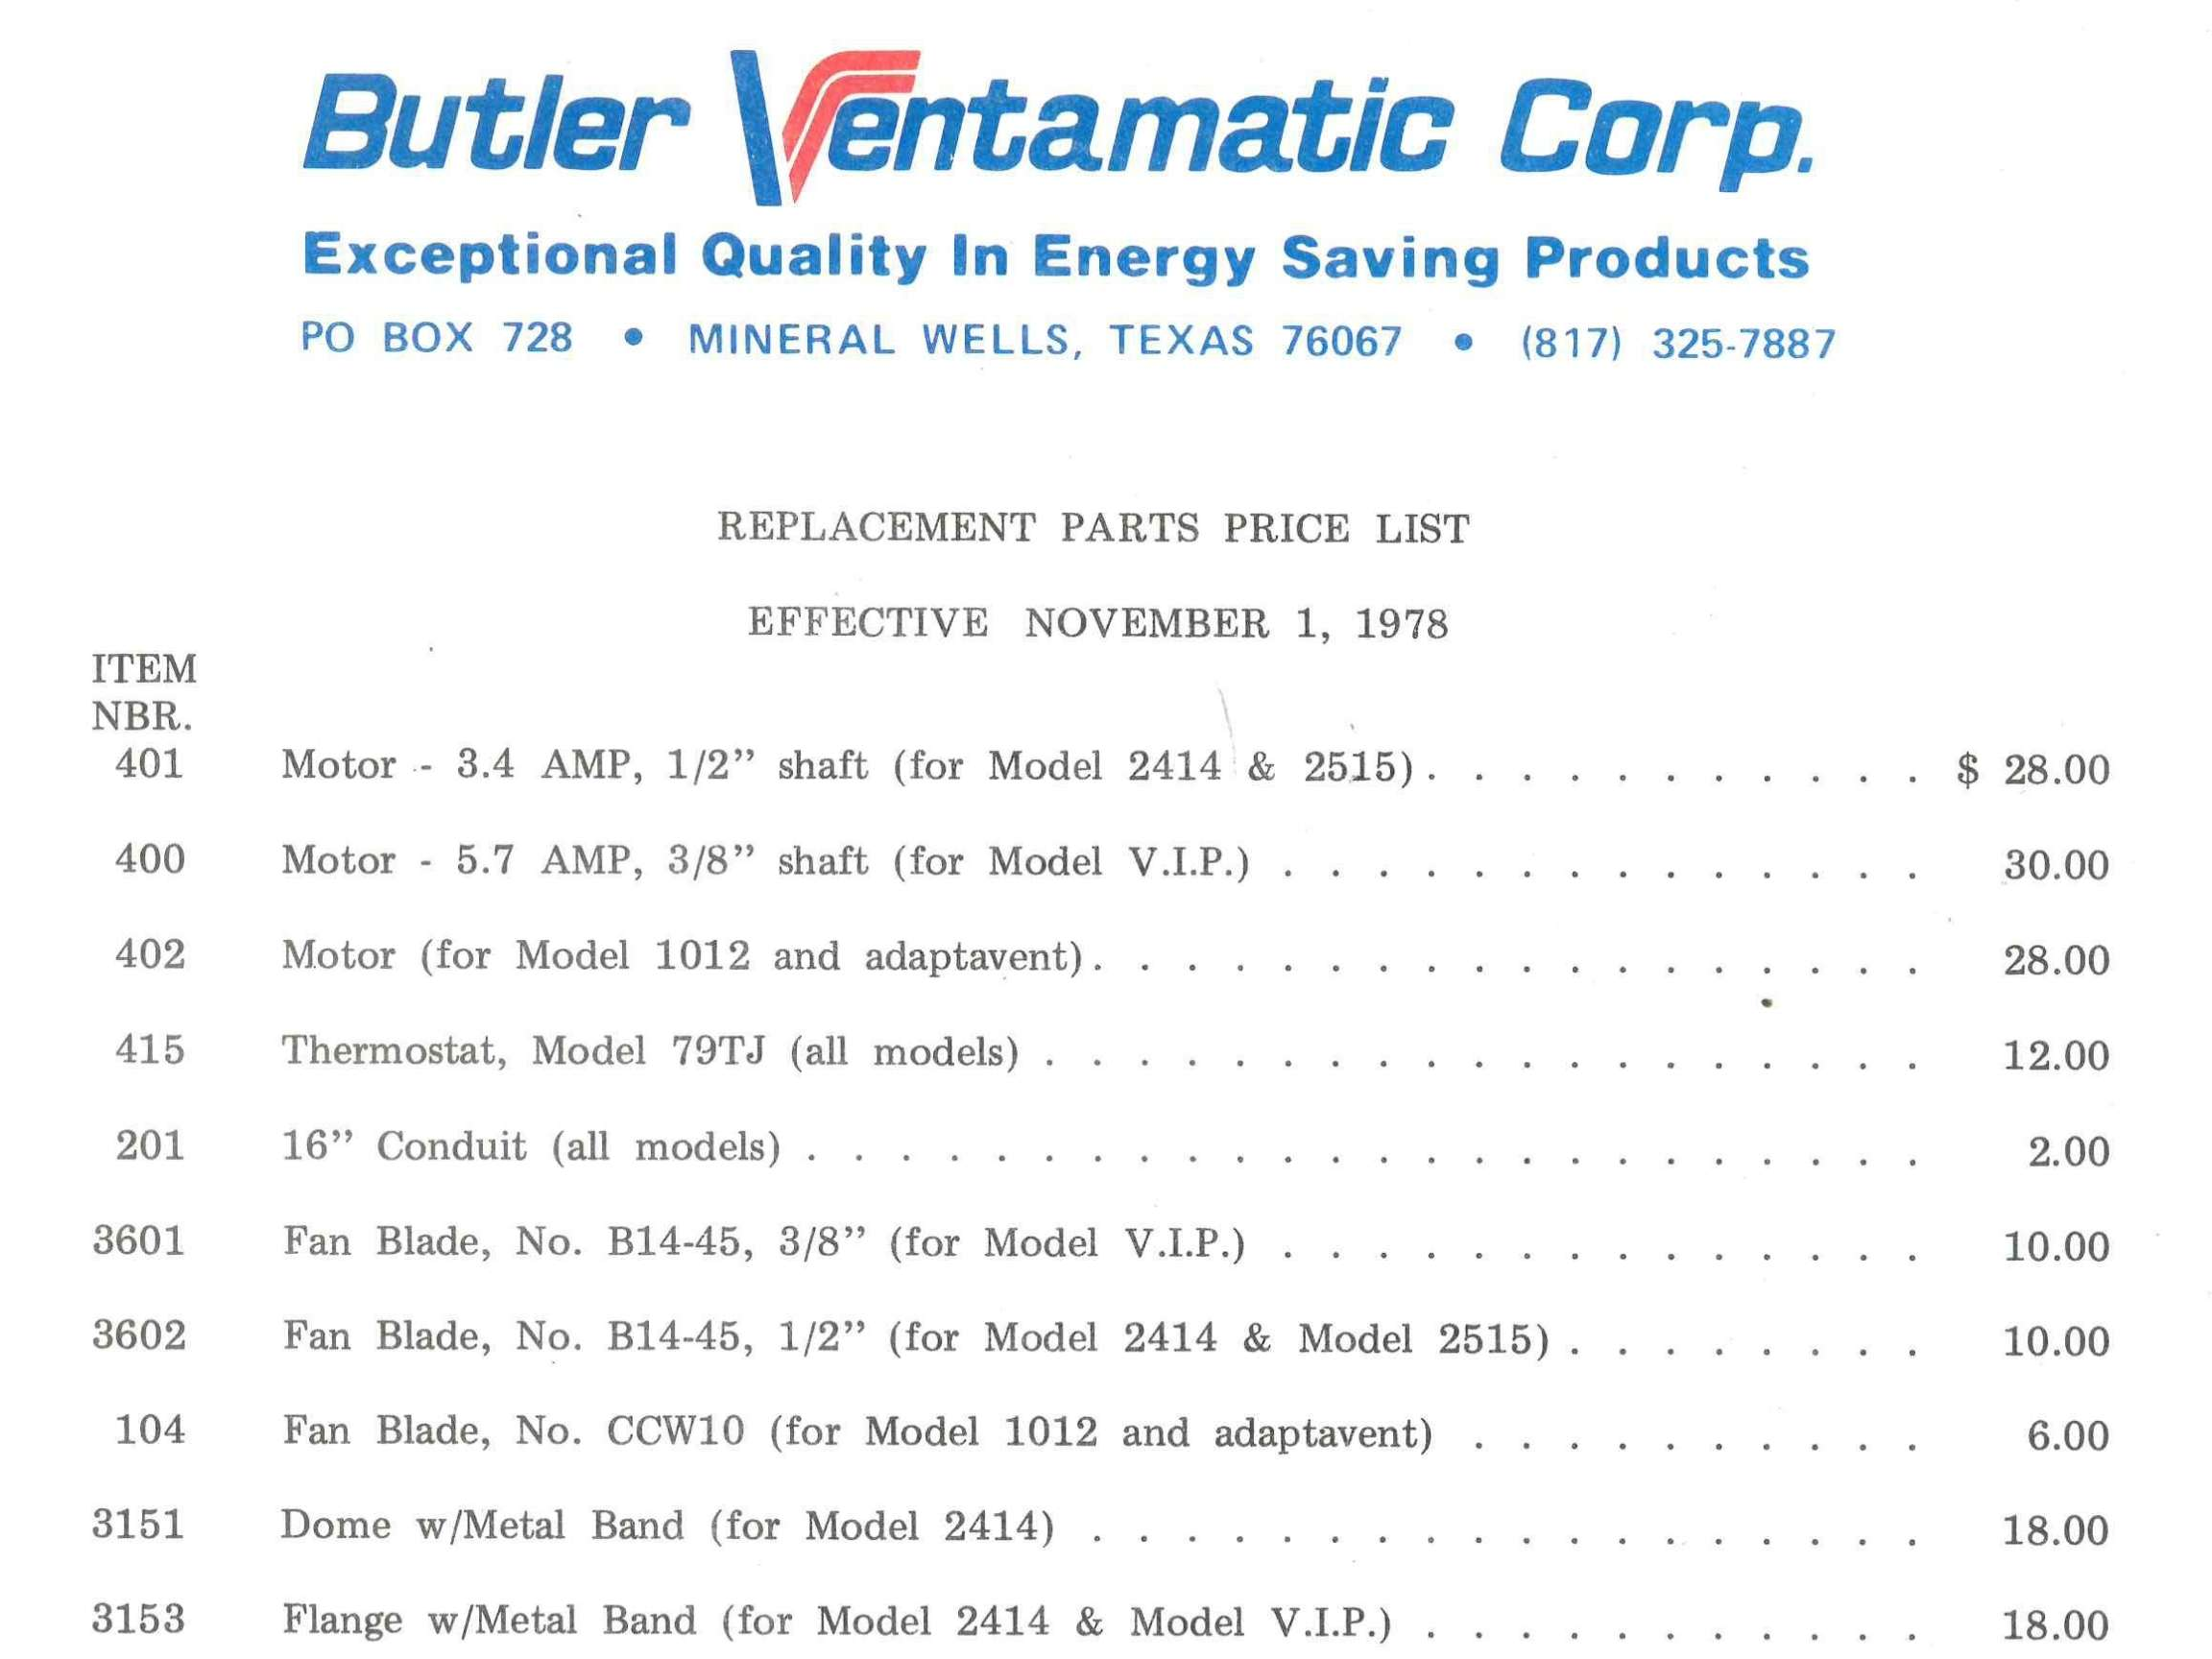 A catalog from 1978 showing the prices of replacement parts and components for Butler Ventamatic products.